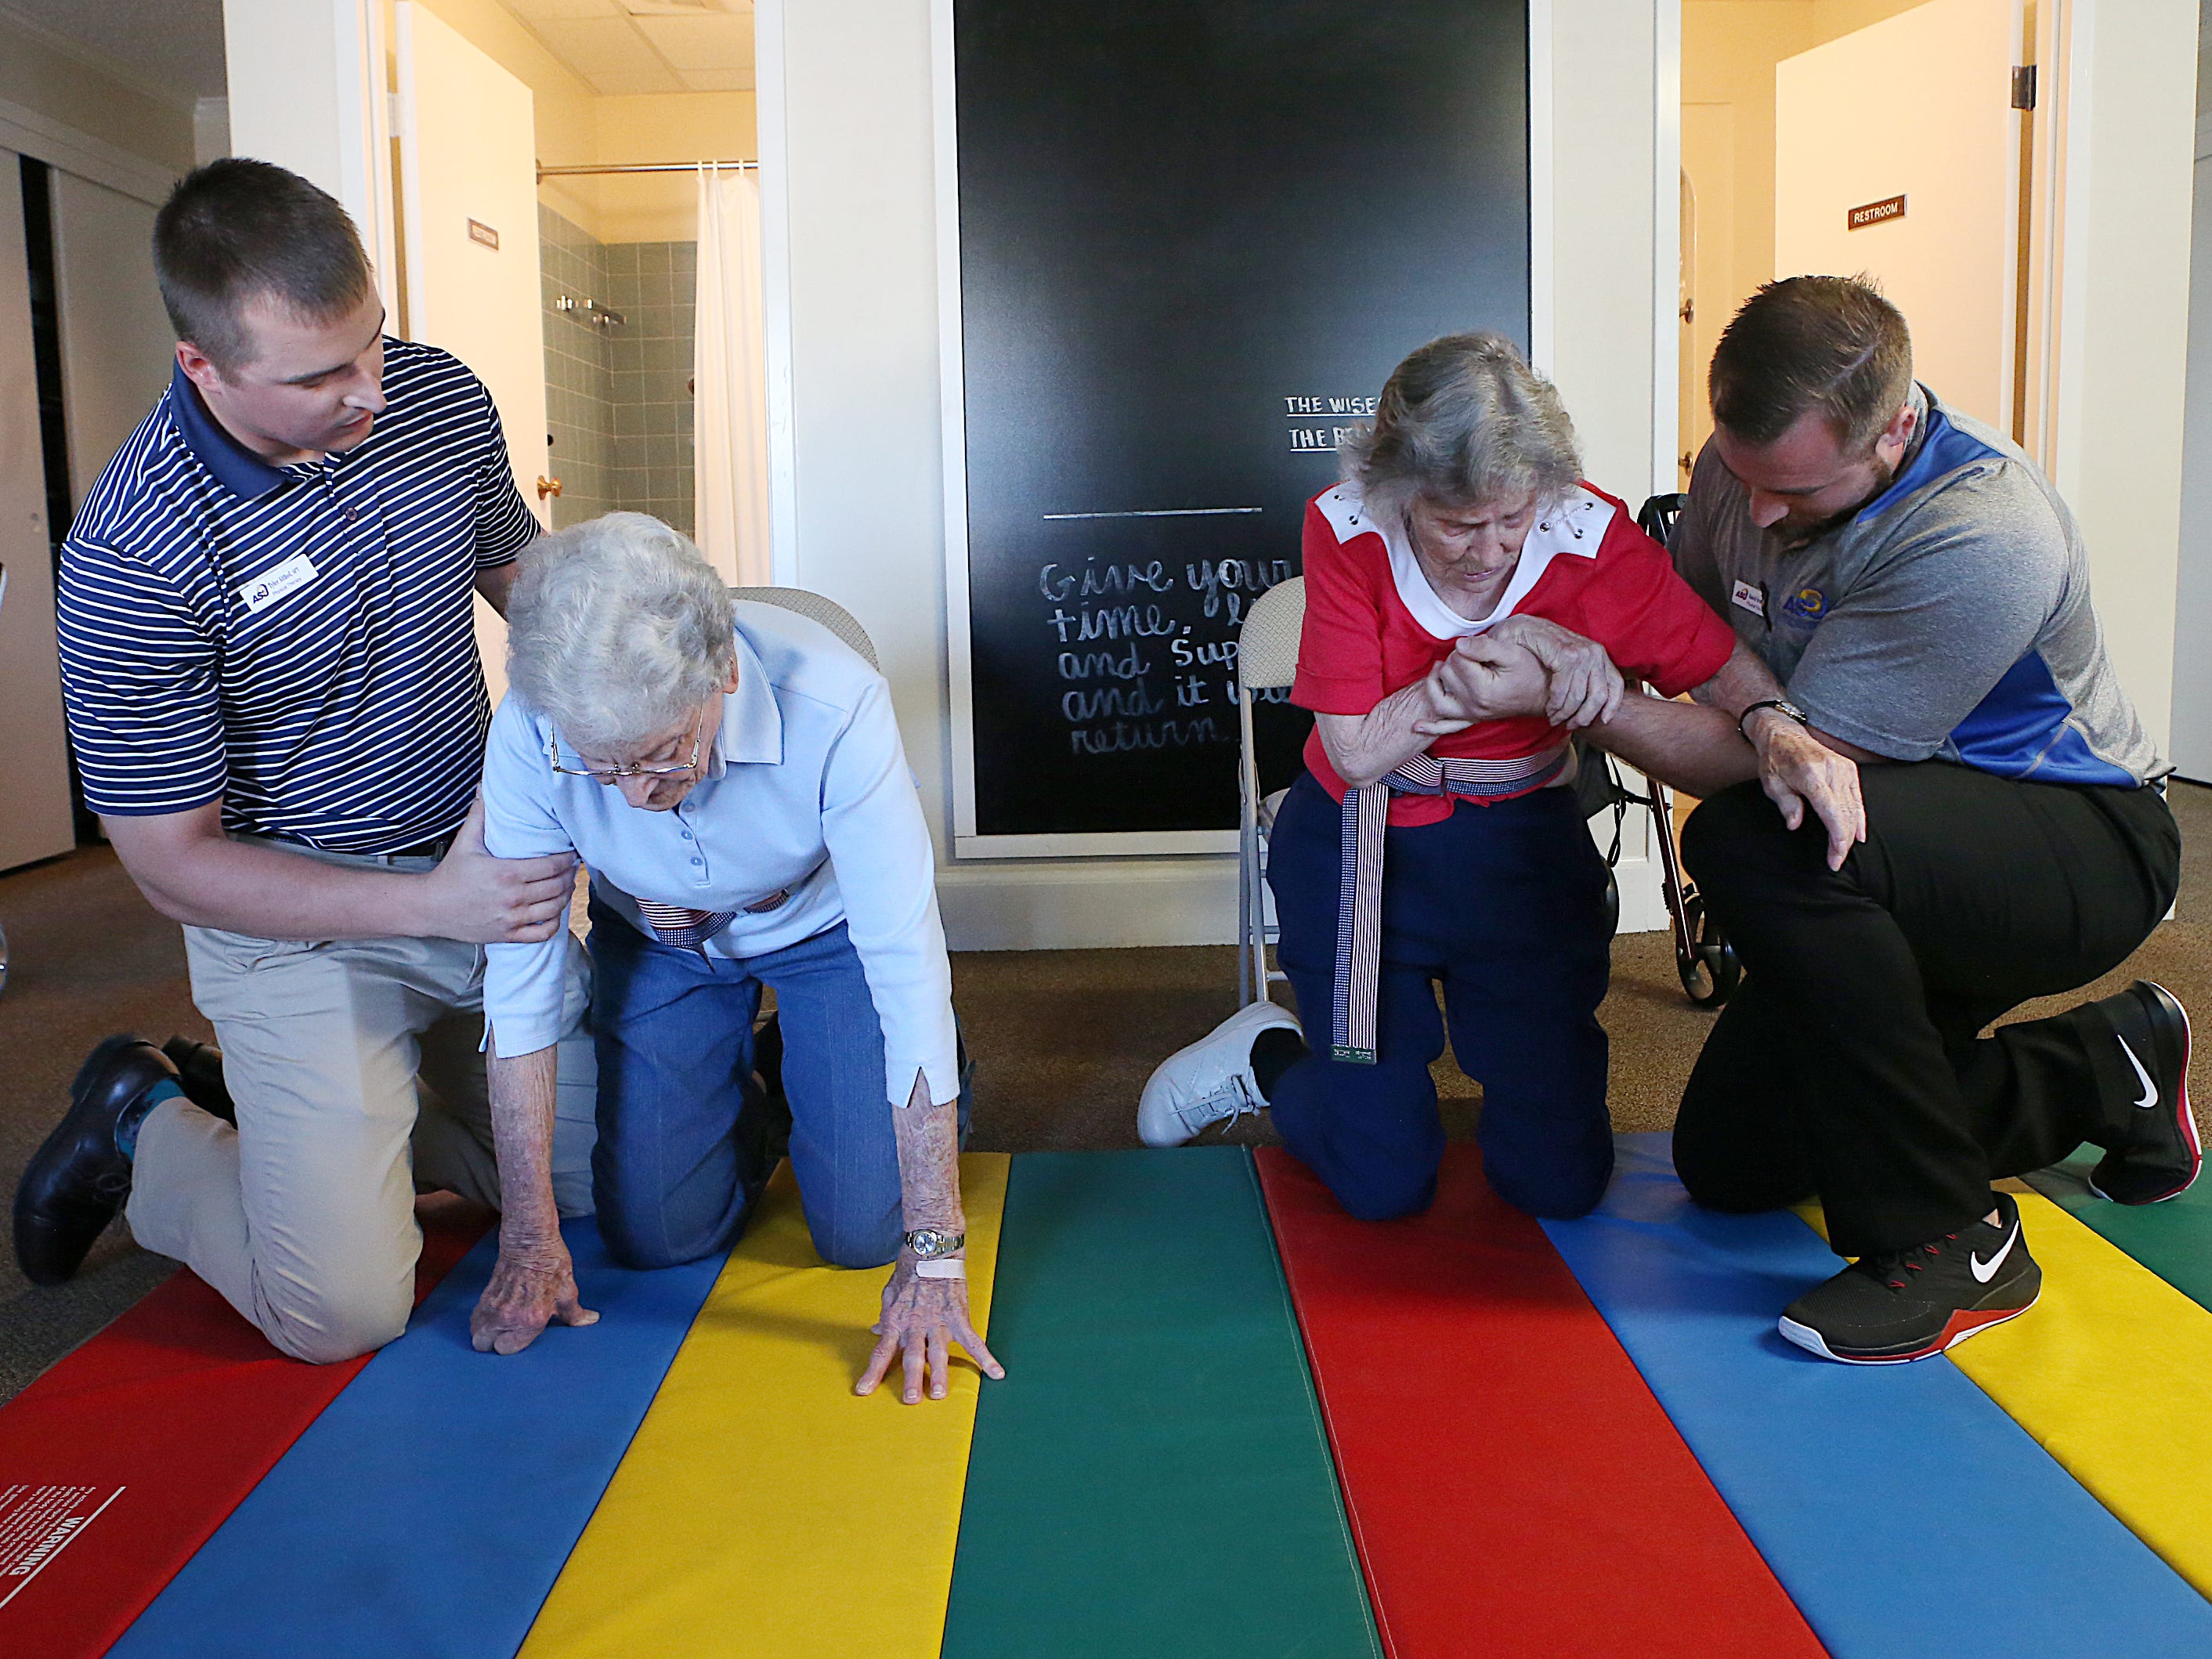 Residents June Heck (left) and Barbara Marshal are helped onto a mat  by Tyler Althof (left) and Dan Grimes, physical therapy students from Angelo State University down during a Balance and Fall Risk Reduction Program for seniors at Baptist Retirement Community Monday, Oct. 1, 2018.